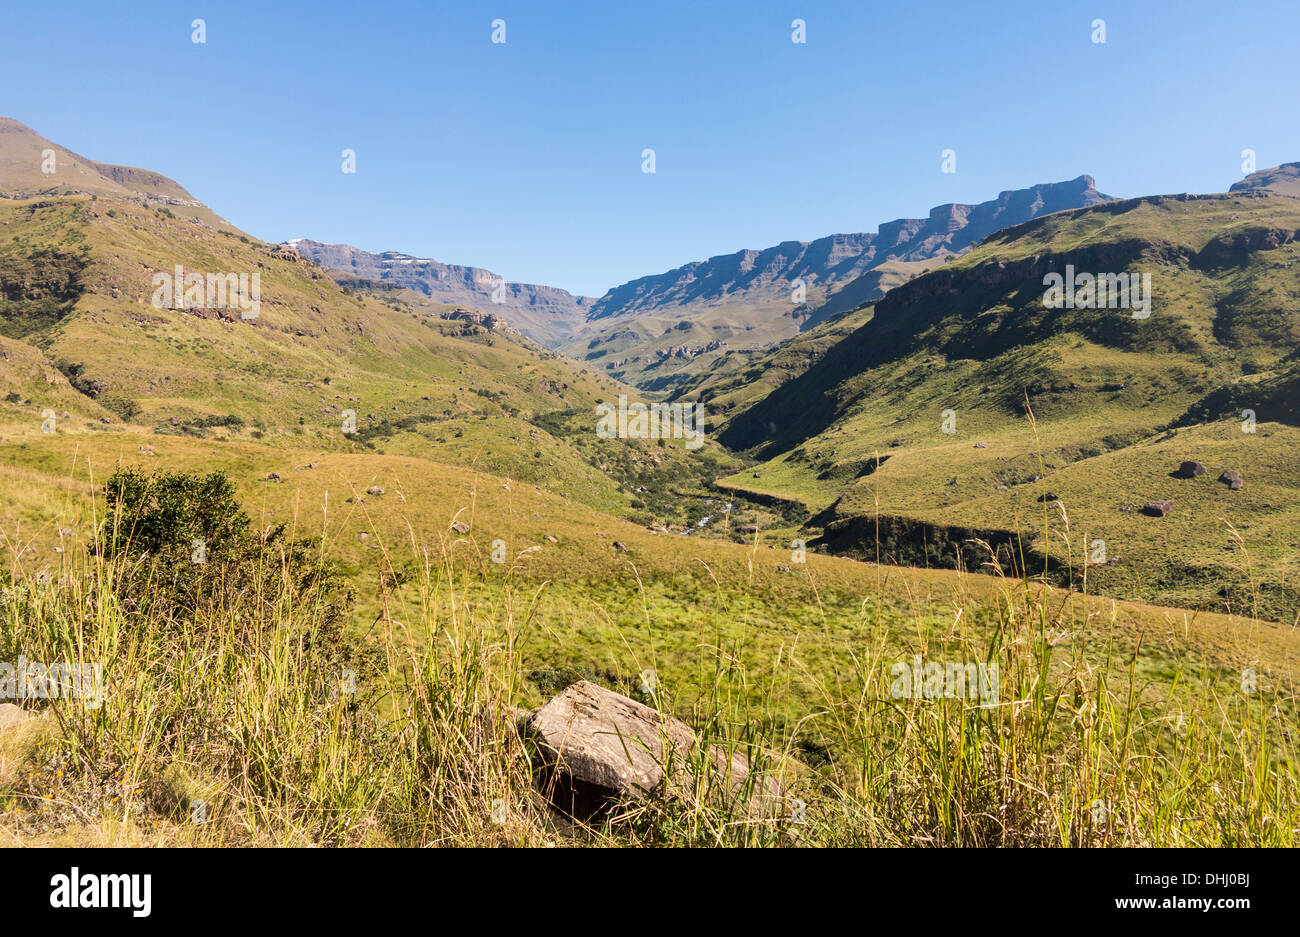 Valley and mountains on the Sani Pass from South Africa to Lesotho in KwaZulu-Natal - Stock Image